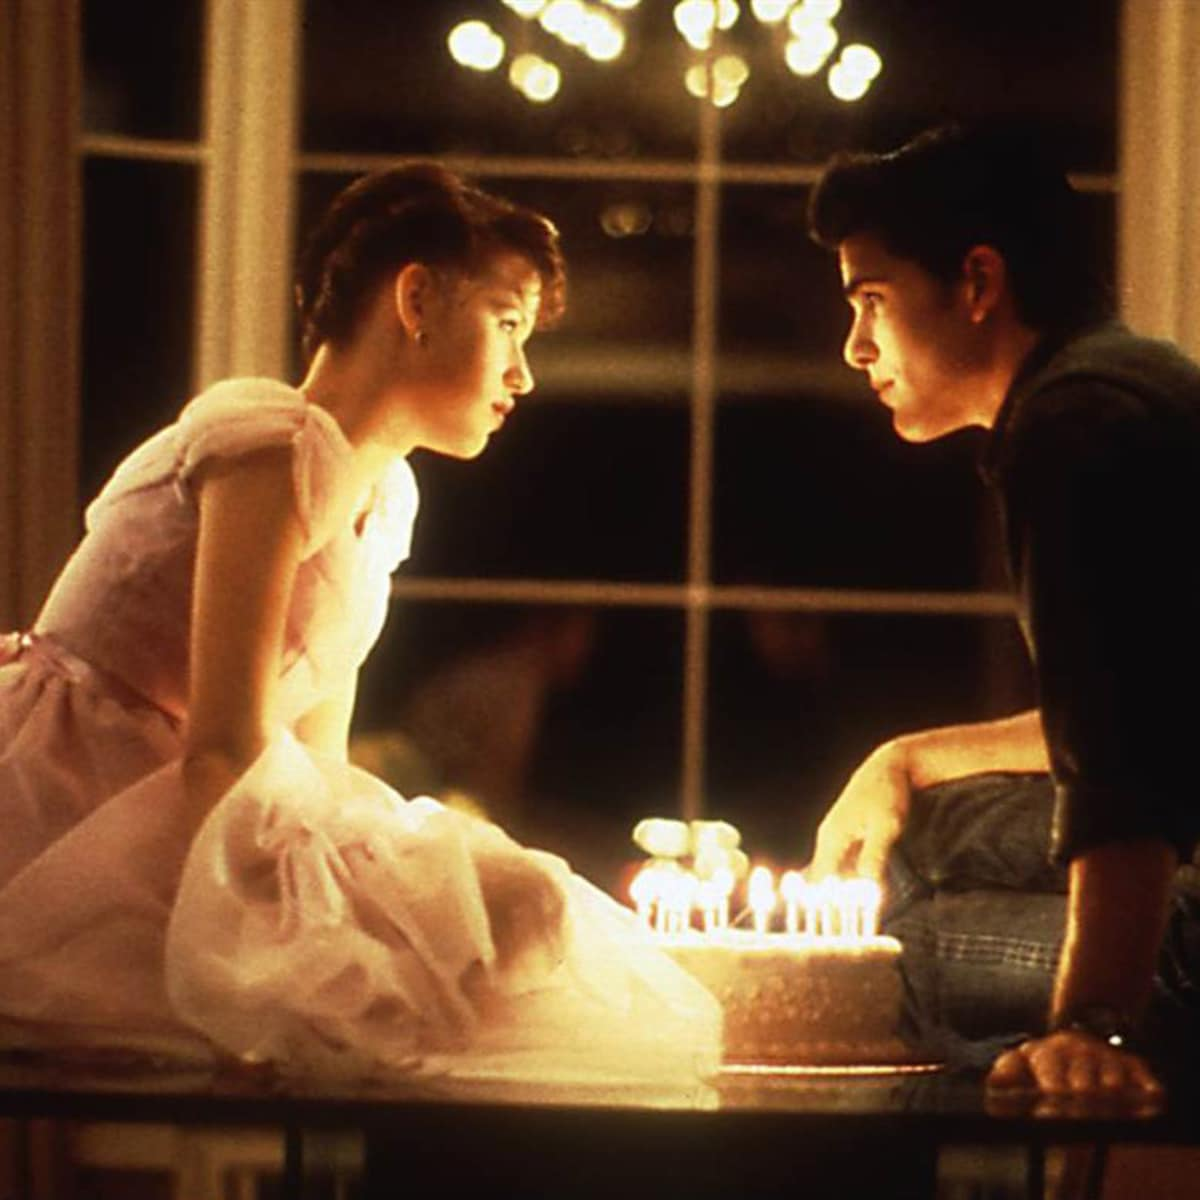 kiss scene from Sixteen Candles between Molly Ringwald and Jake Ryan